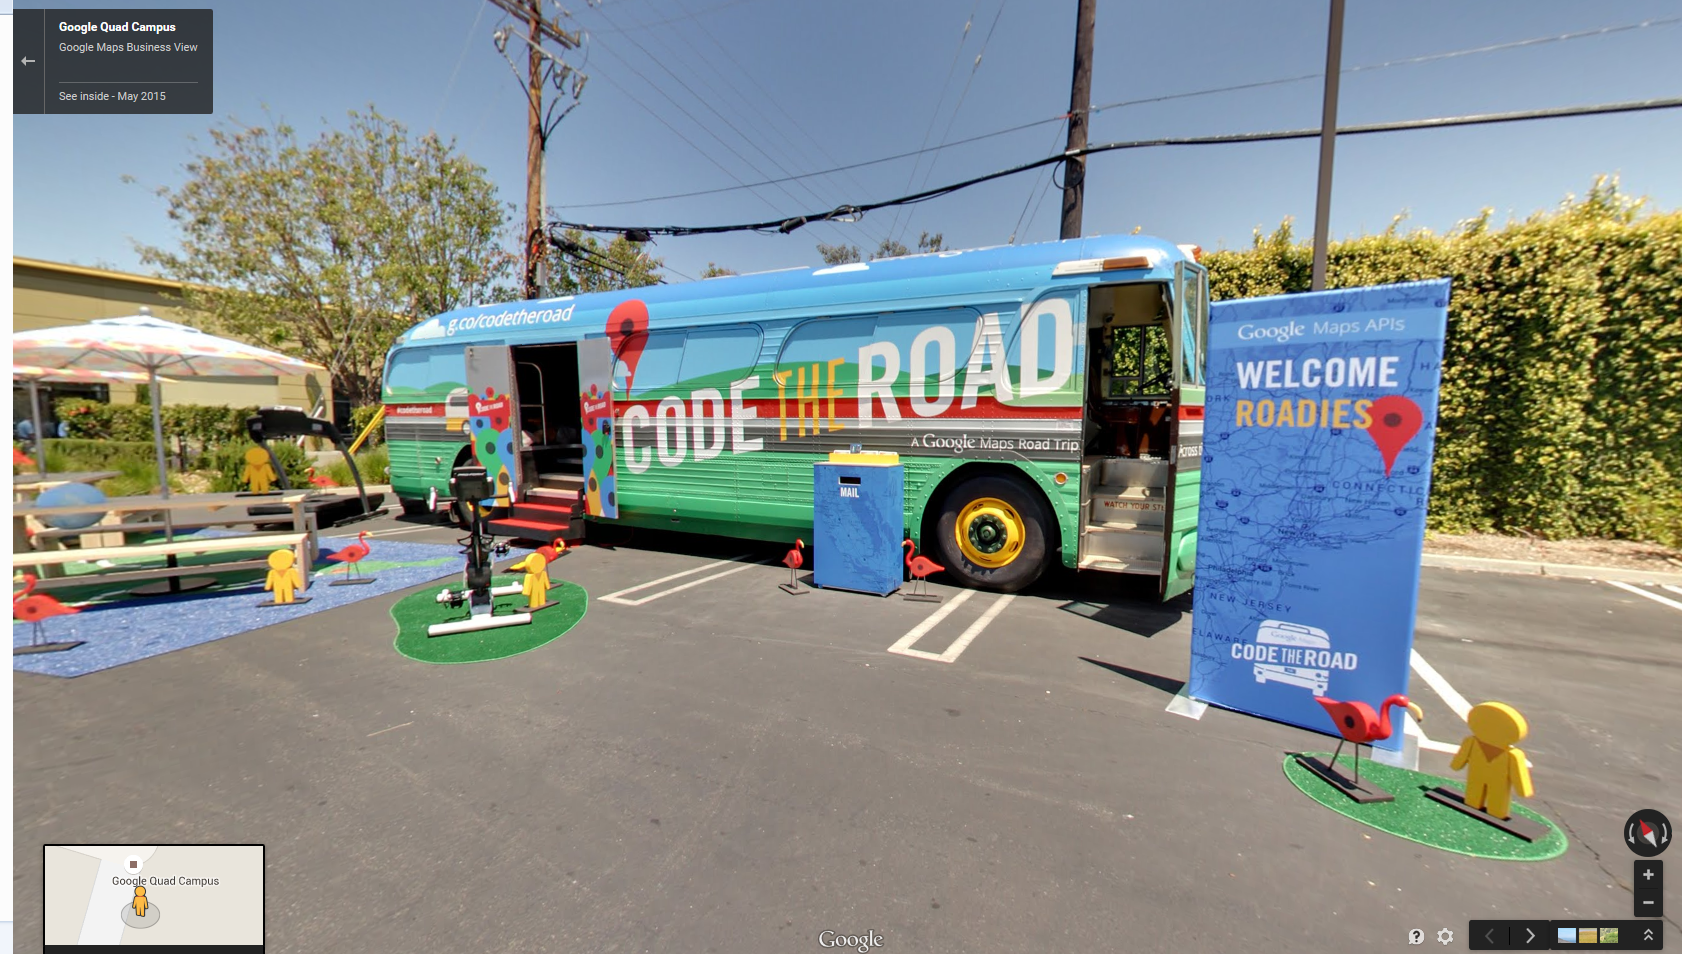 Code the Road – Google Hits the Road